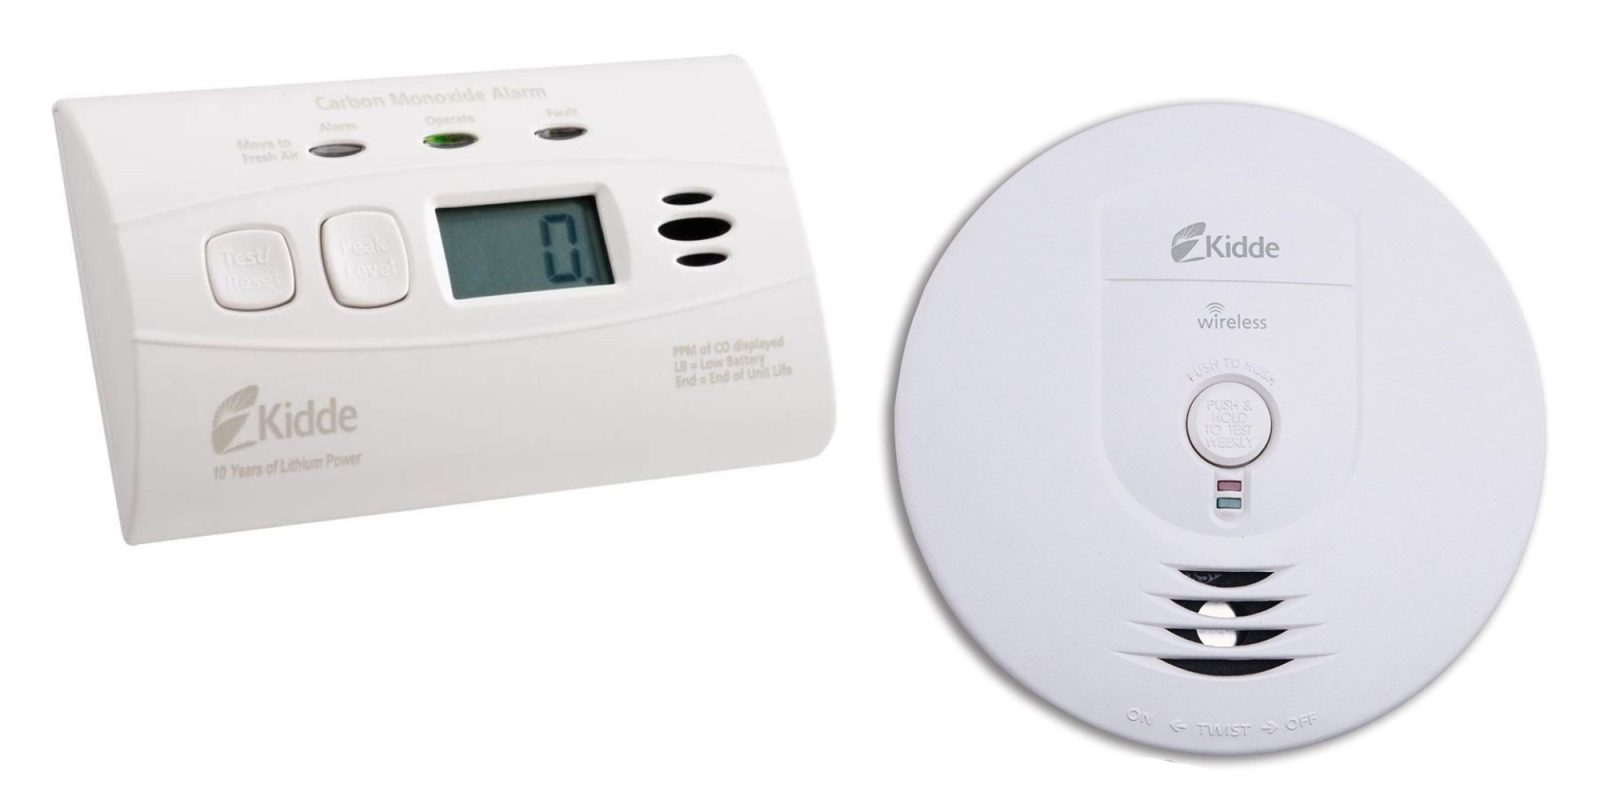 Score up to 30% discounts on Kidde smoke alarms and much more from $18